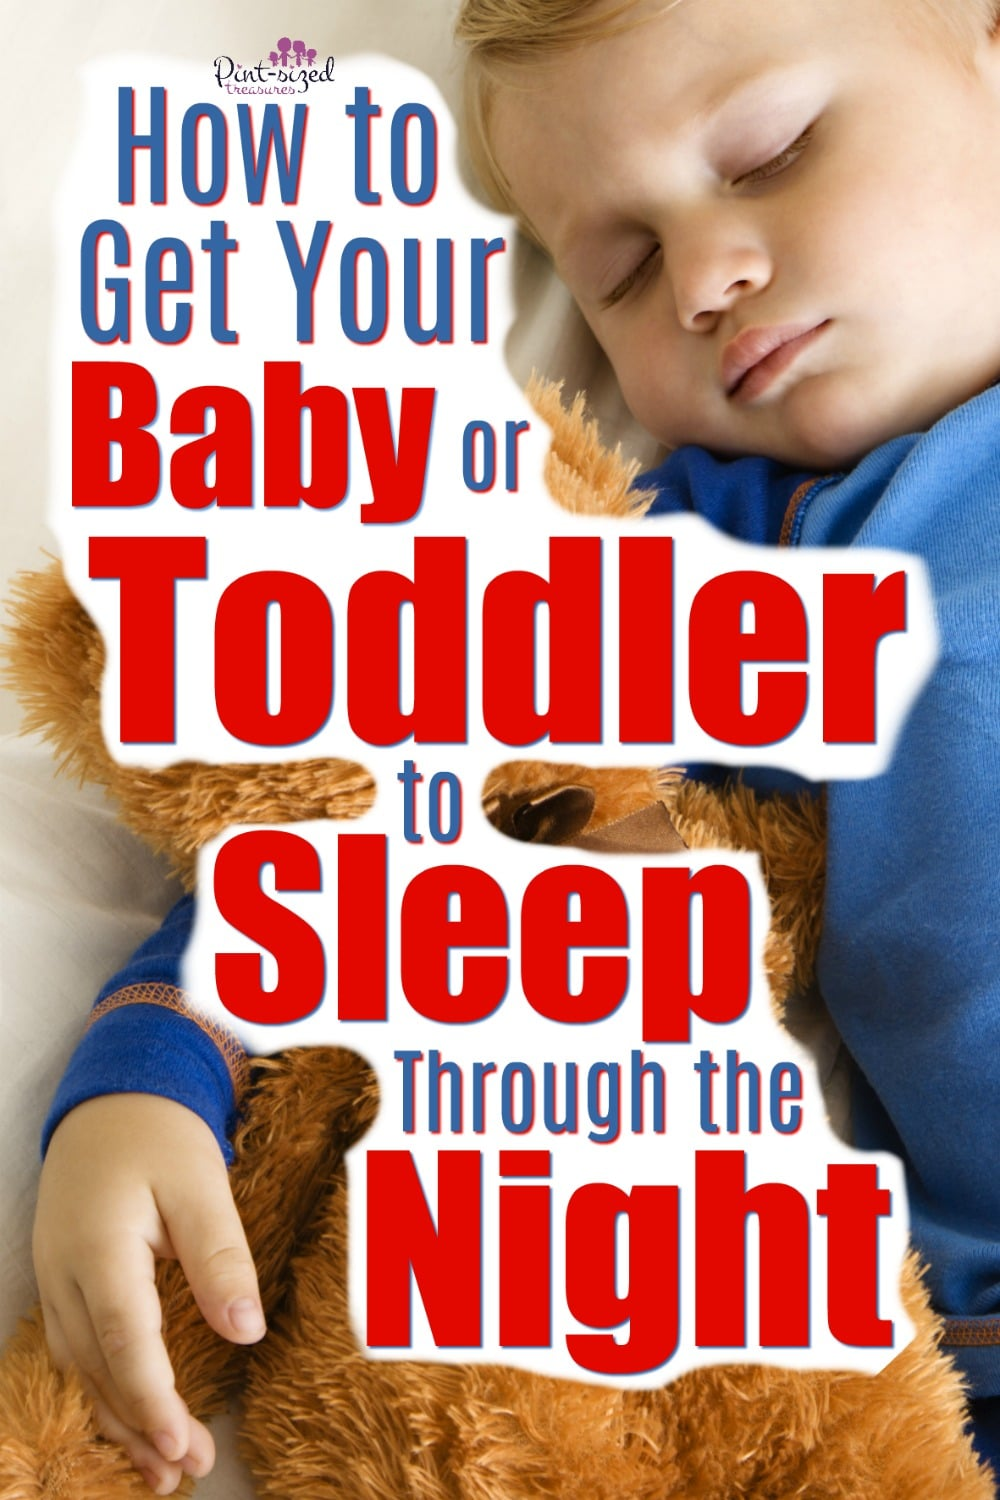 Is your baby or toddler waking up during the night? Here's simple ways to get your toddler or baby to sleep through the night...every night!